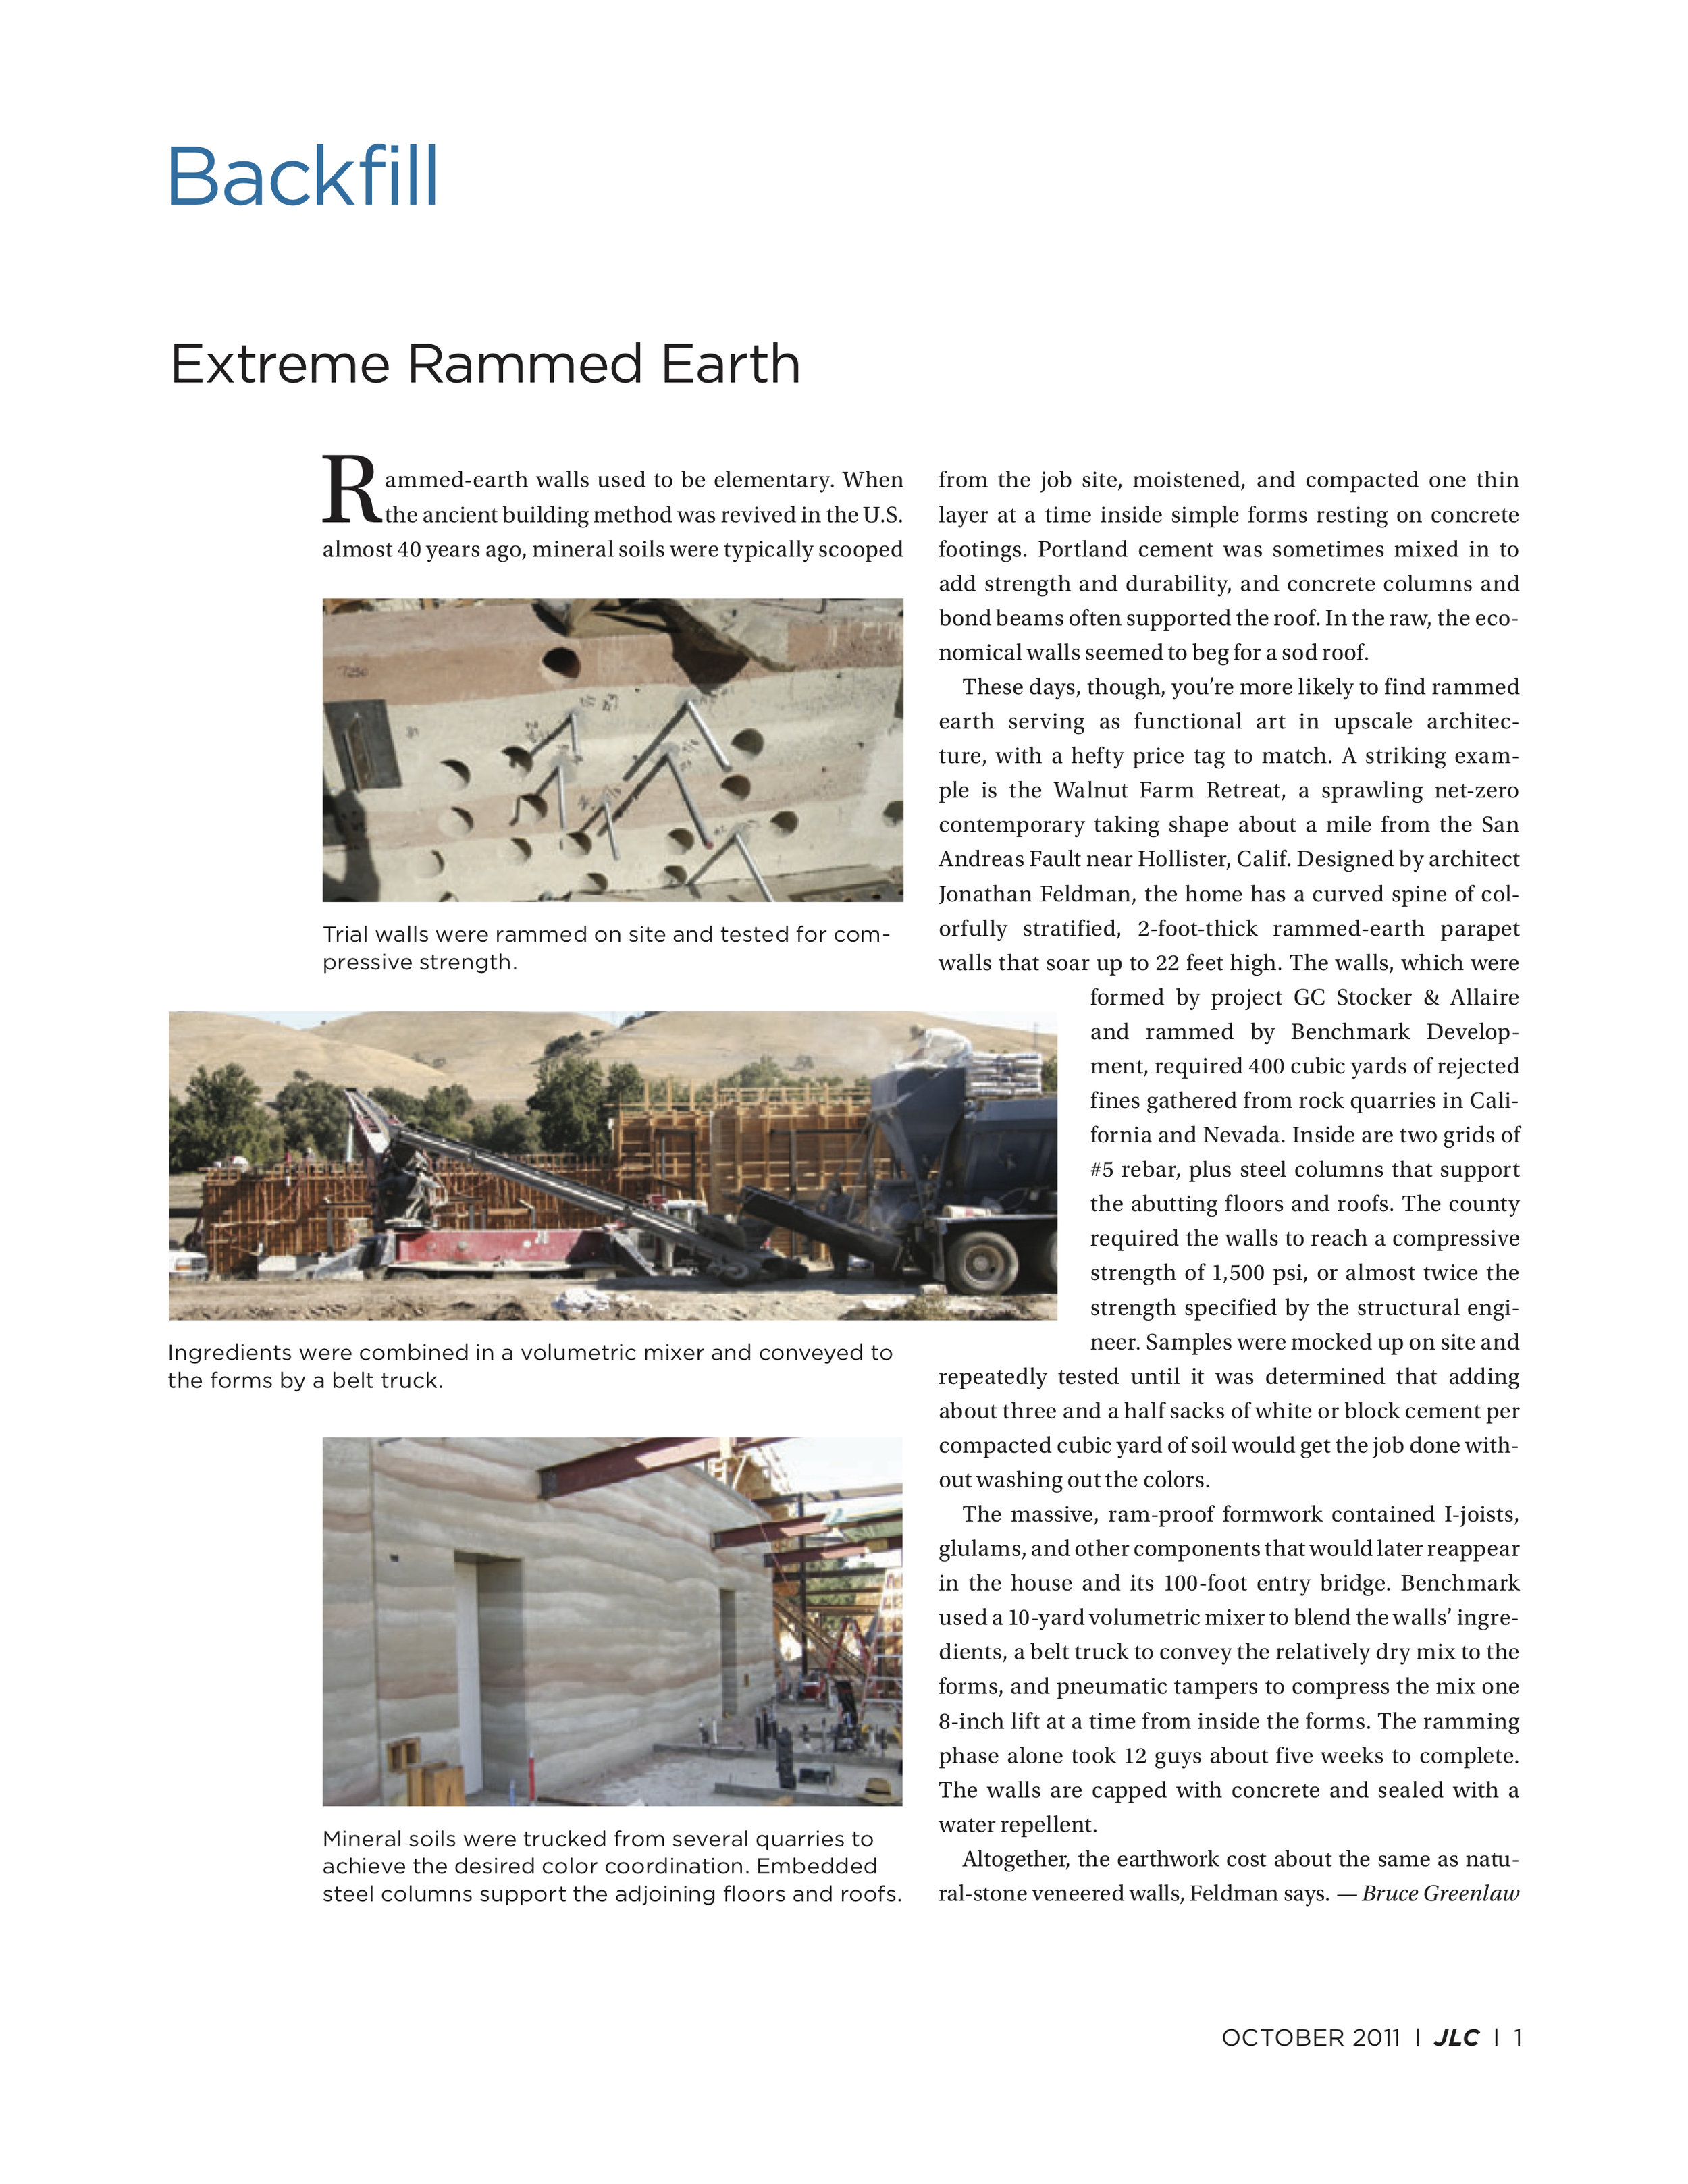 Extreme Rammed Earth